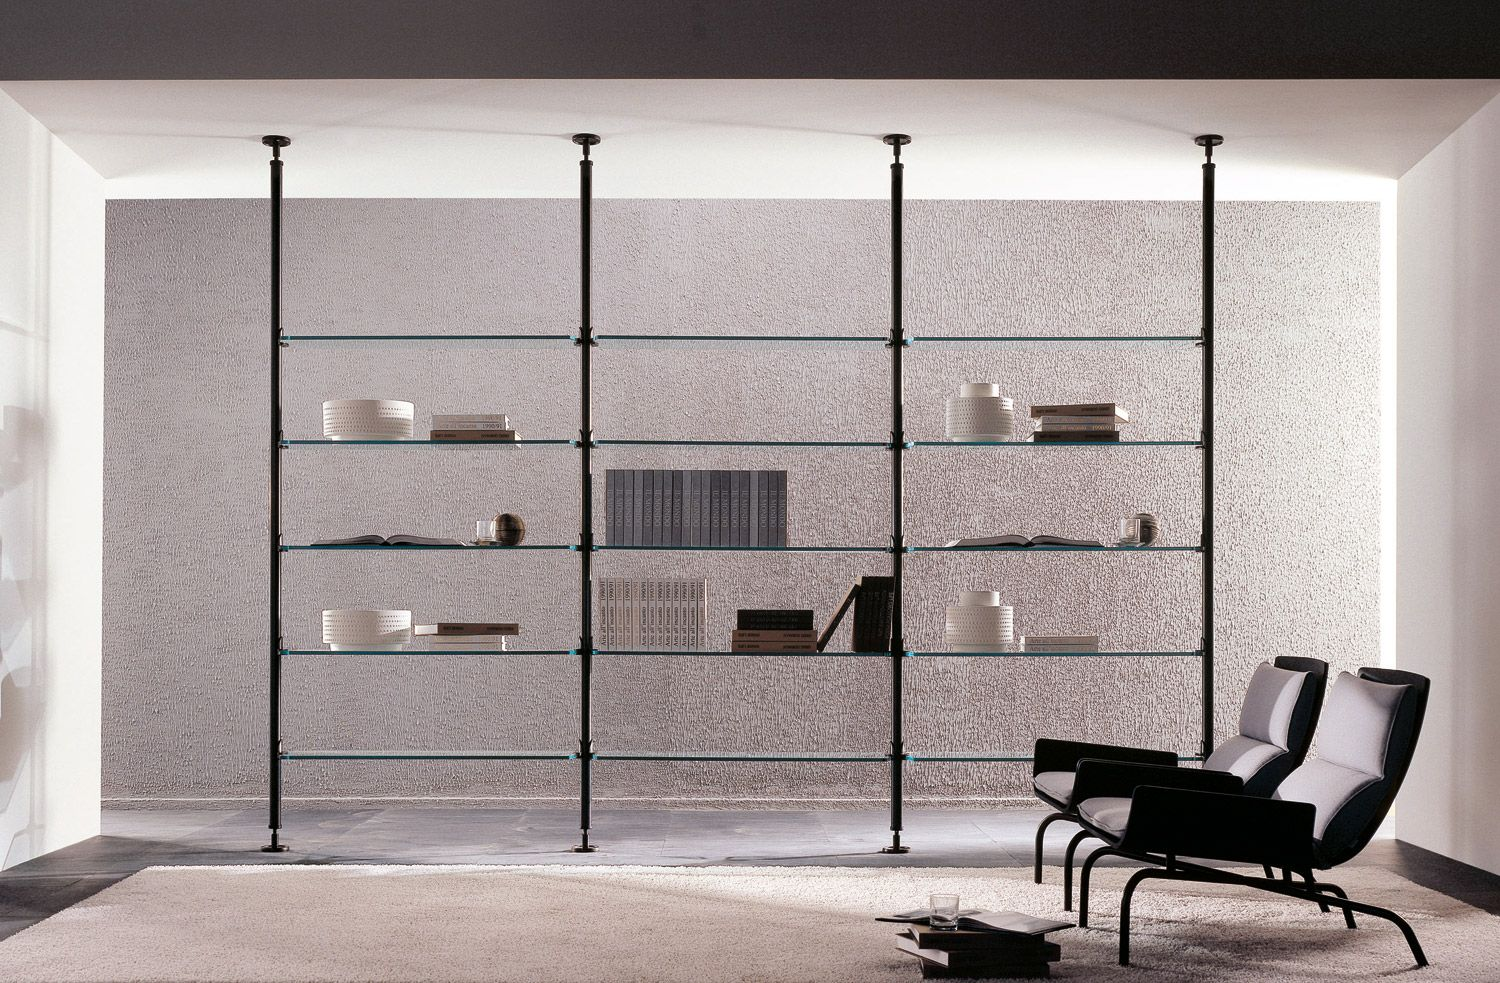 Porada arredi srl storage shelving in 2019 pinterest for Porada arredi srl